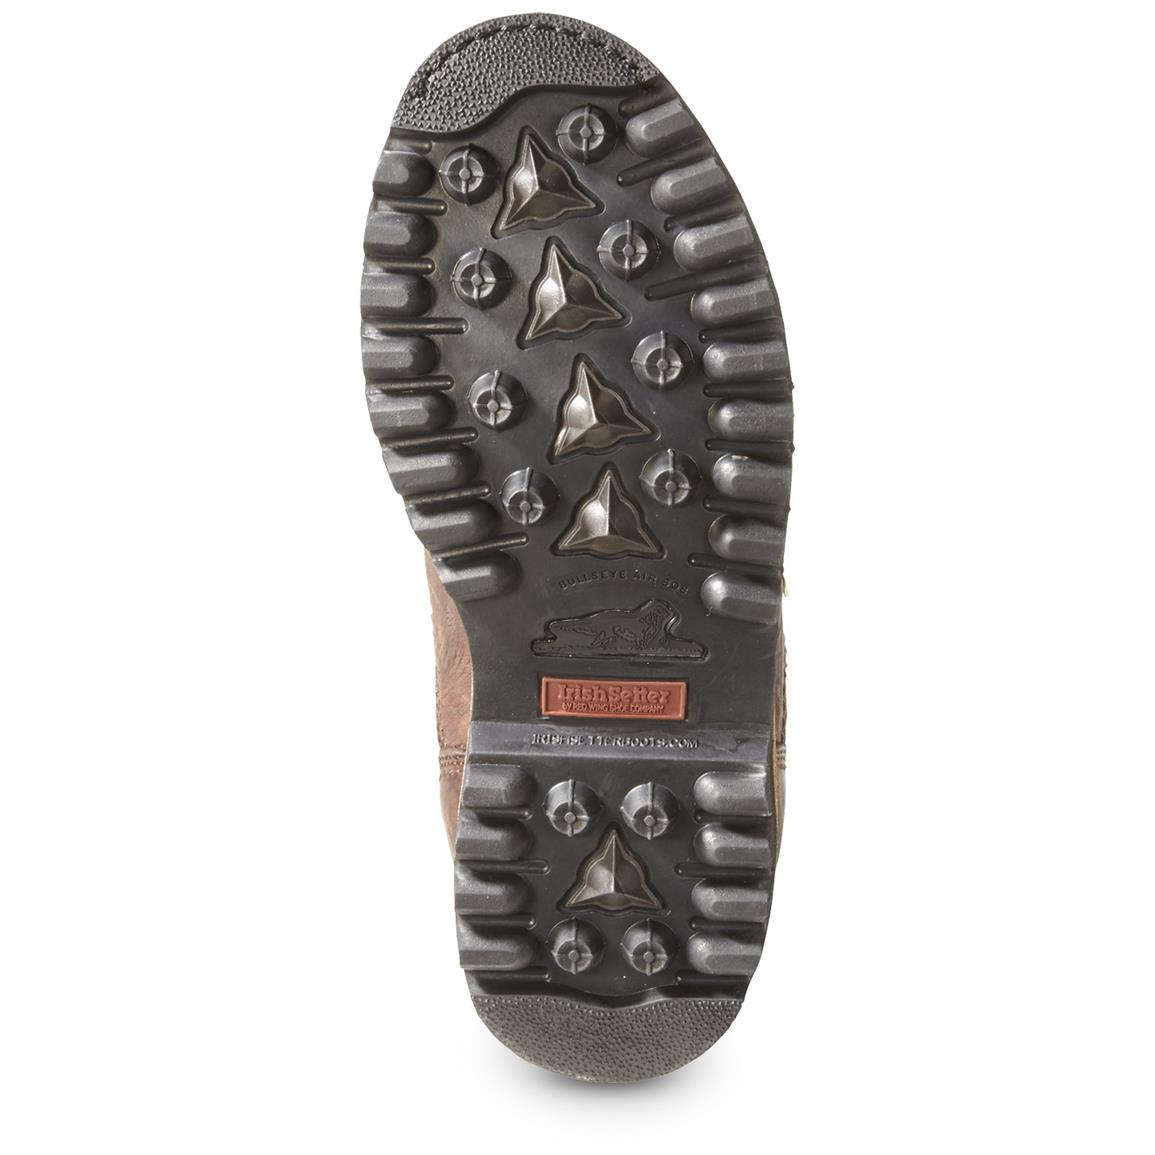 Aggressive lug outsole for steep inclines and sloppy trails